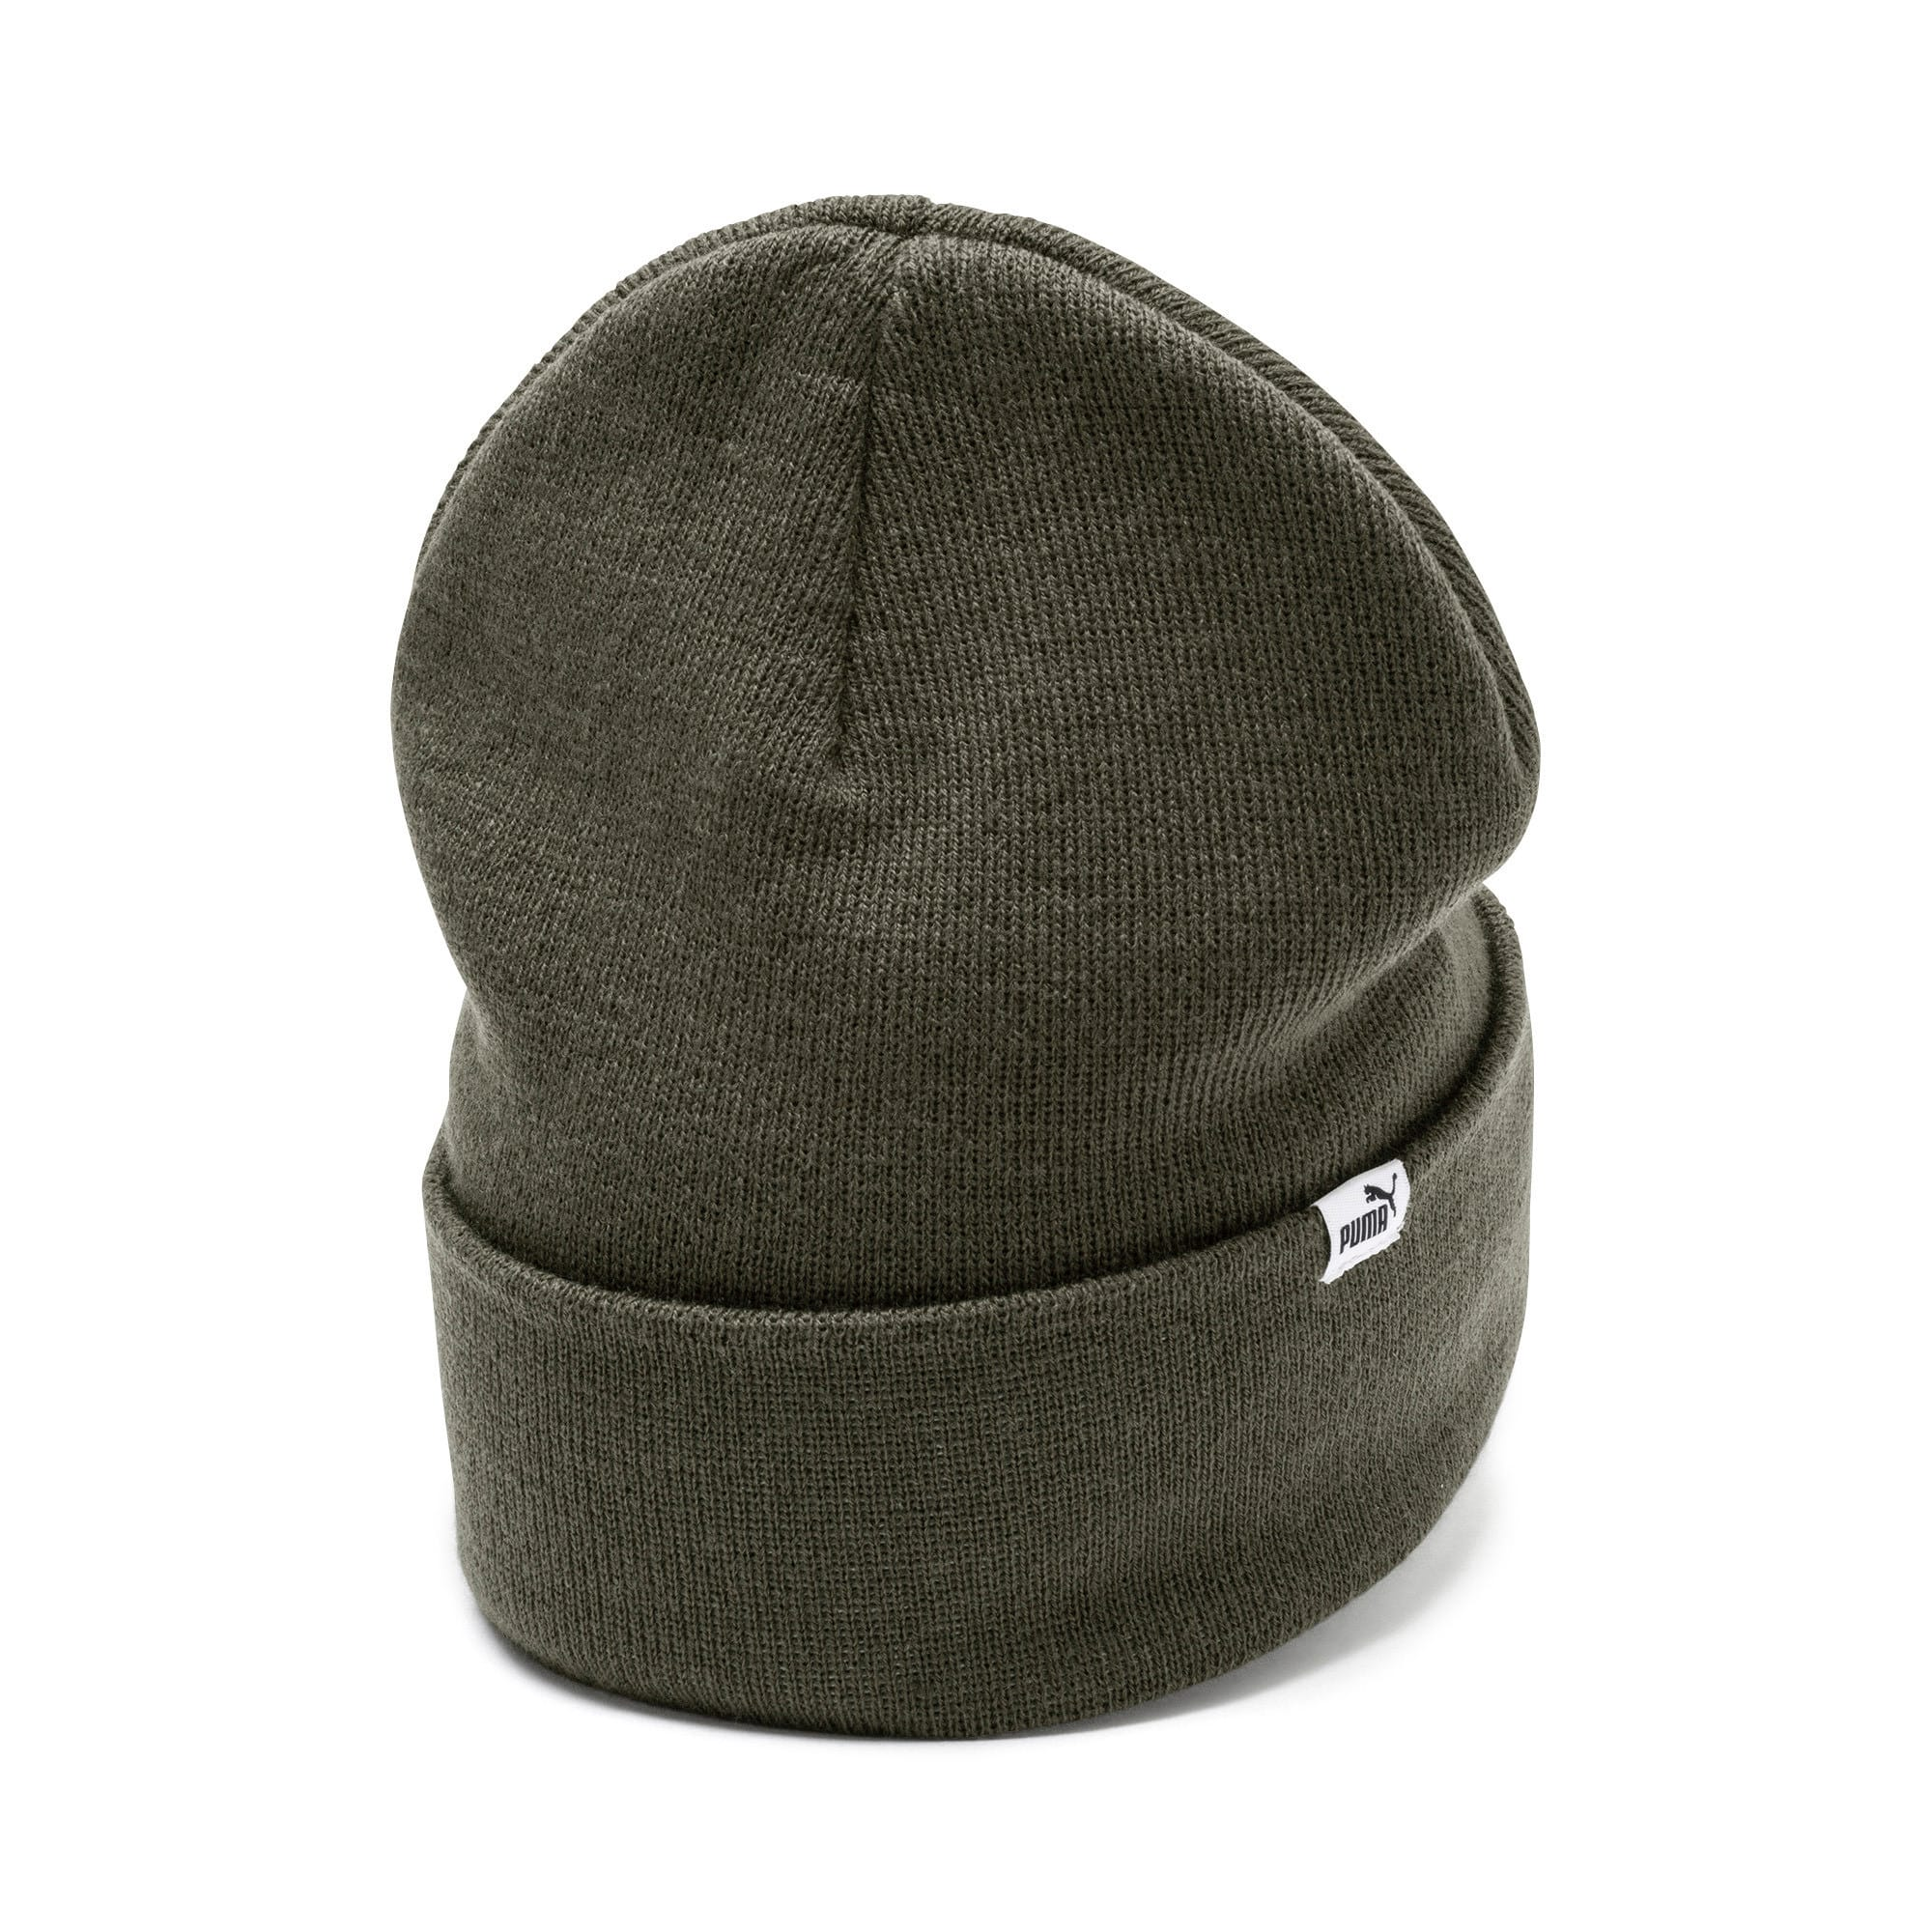 Thumbnail 2 of Mid Fit Beanie, Forest Night, medium-IND